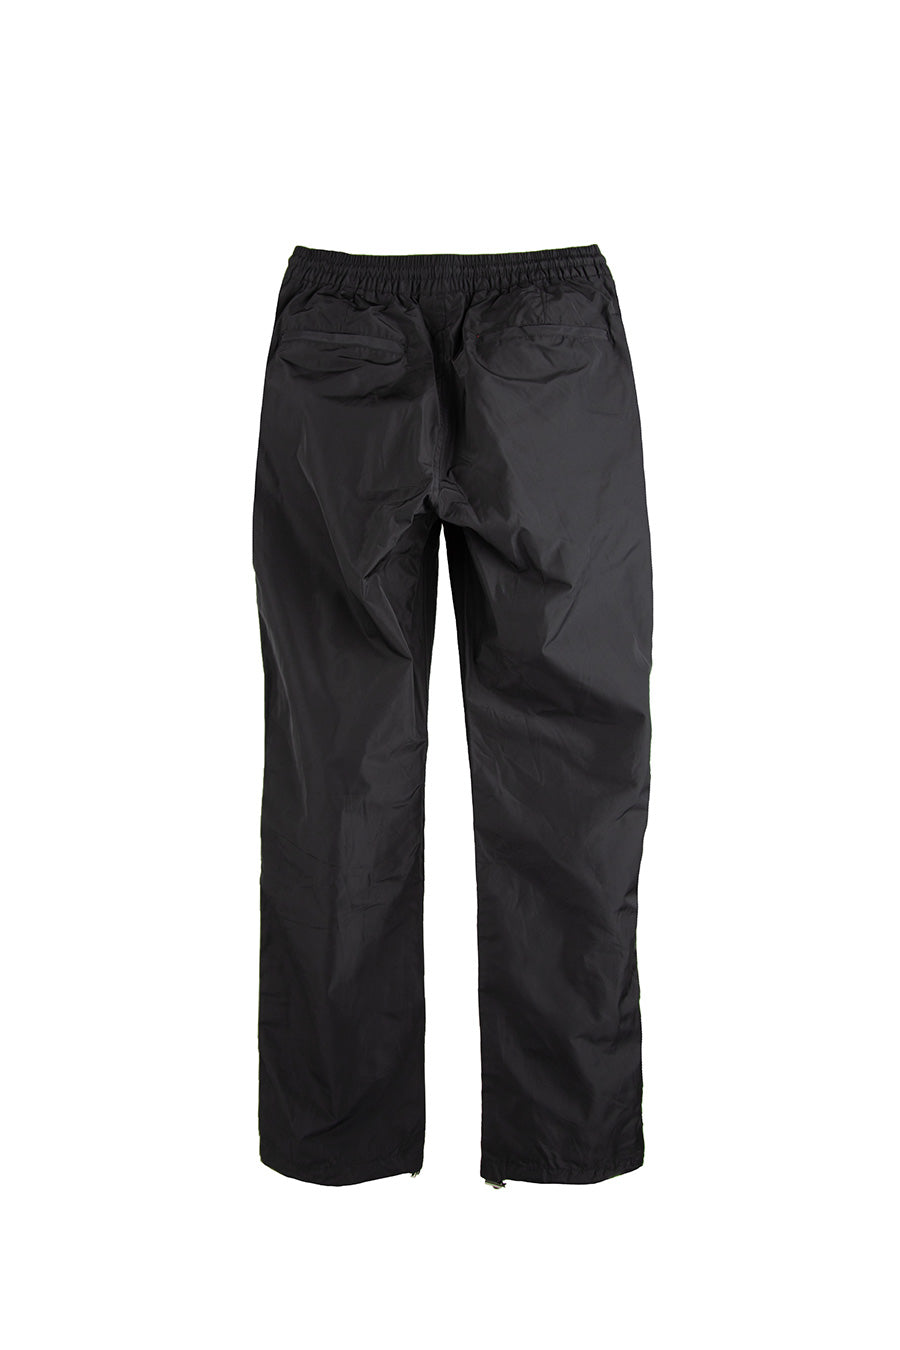 Pleasures - Black Side Zip Track Pant | 1032 SPACE